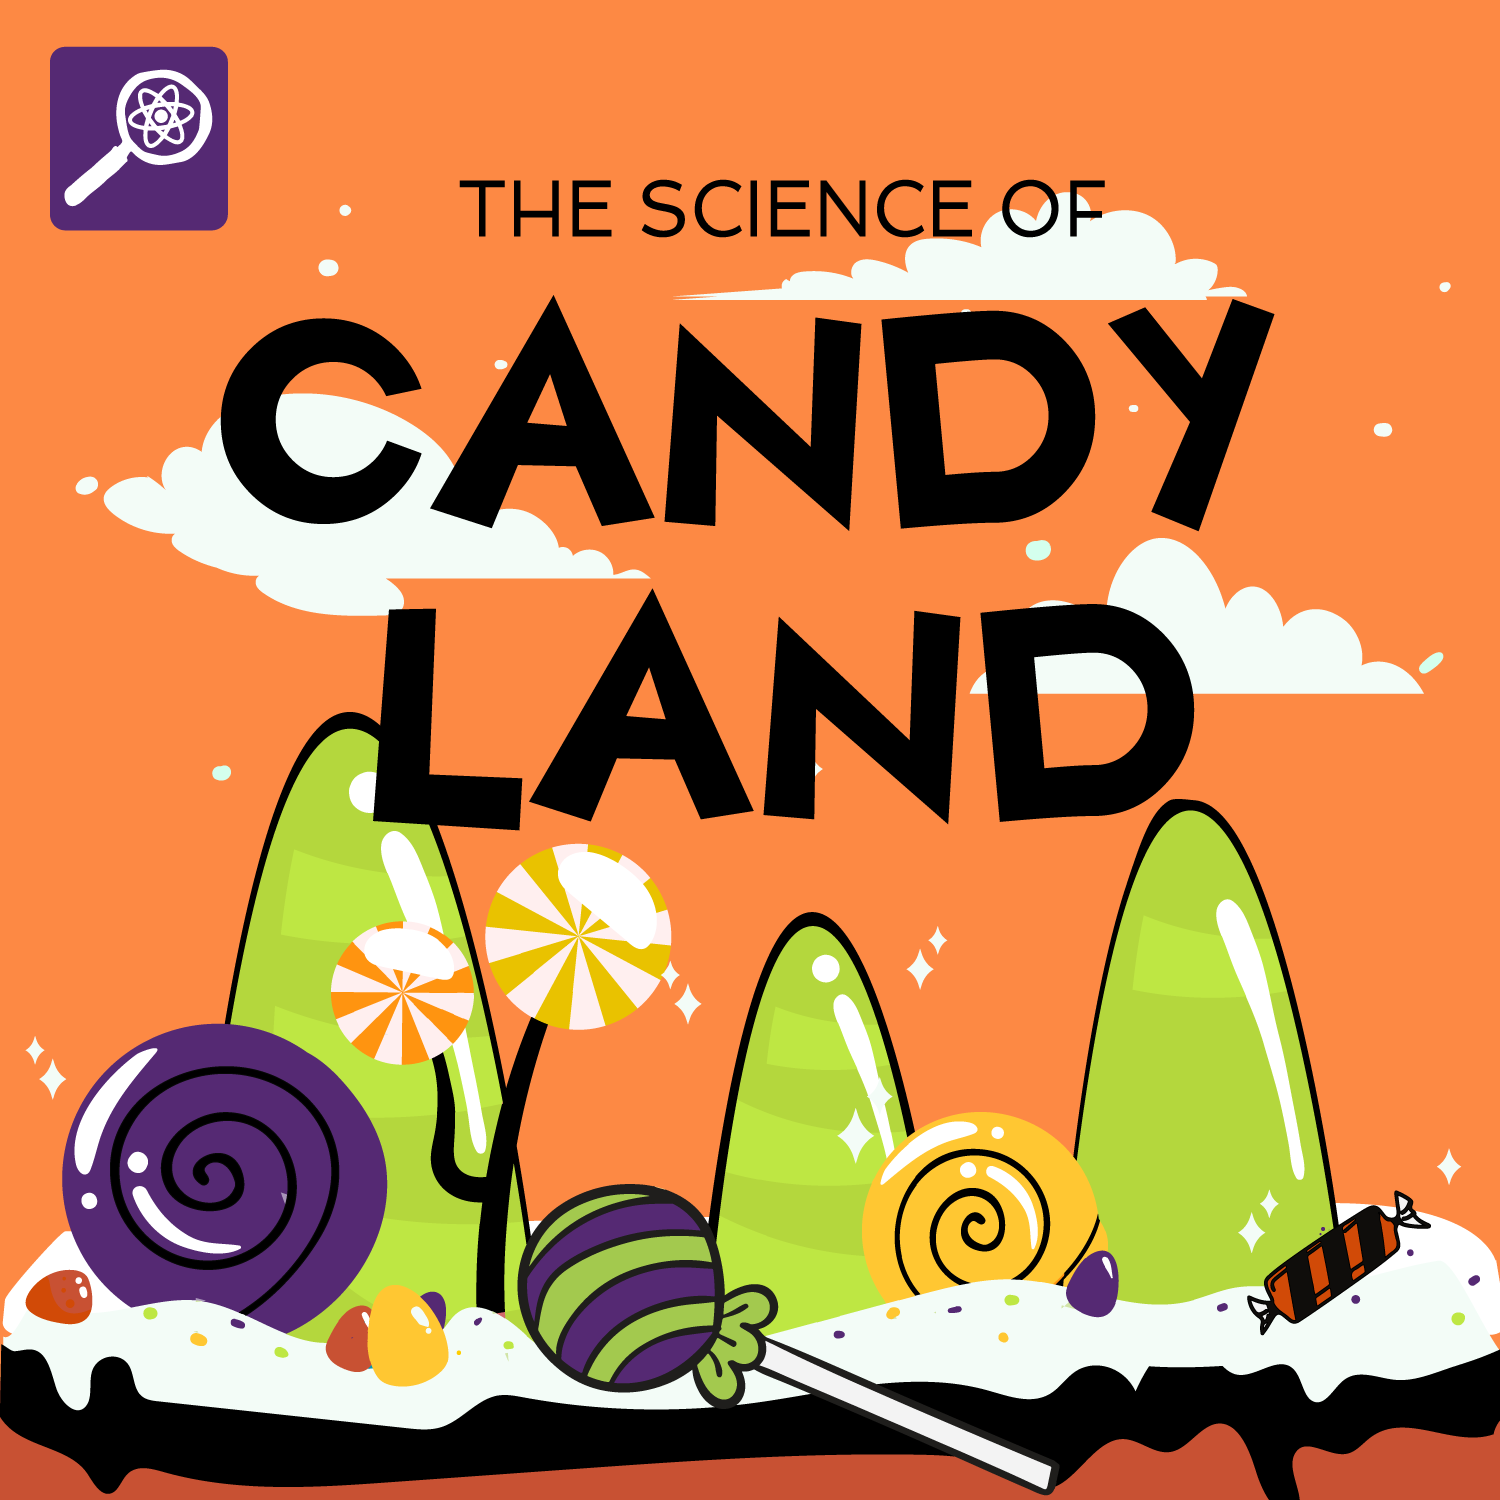 The Science of Candy Land